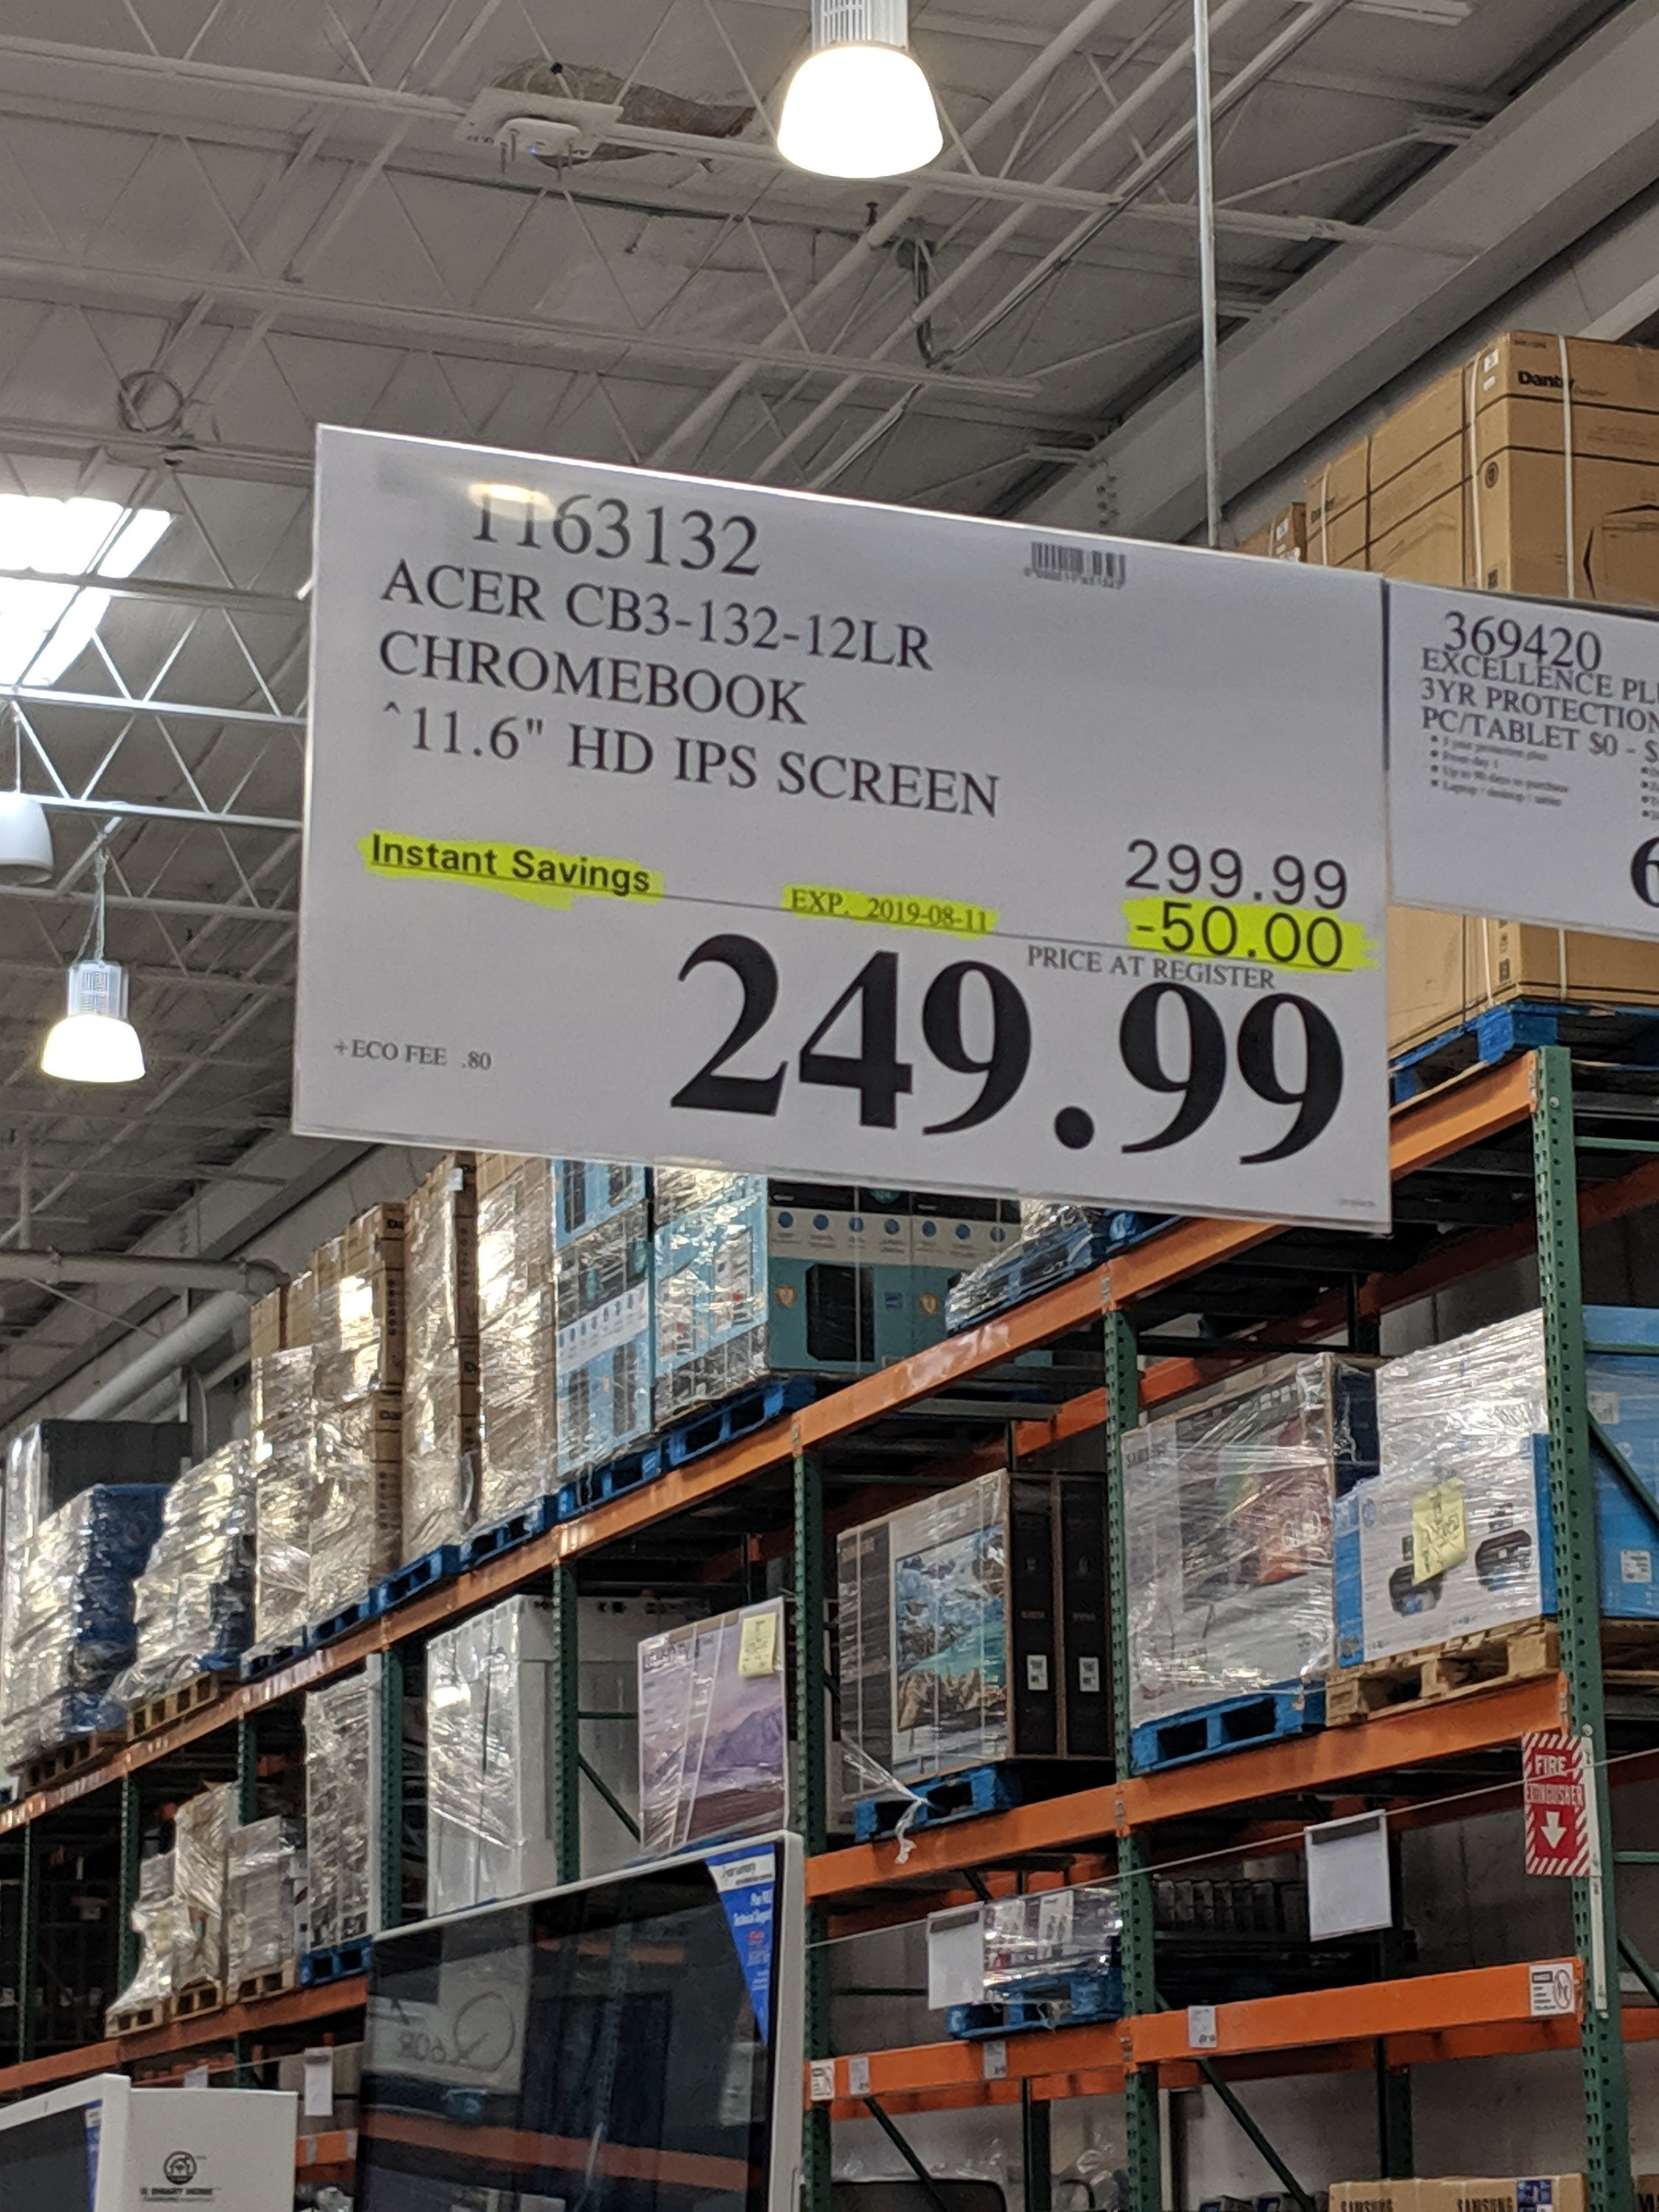 Costco unadvertised deals of the week starting August 5th